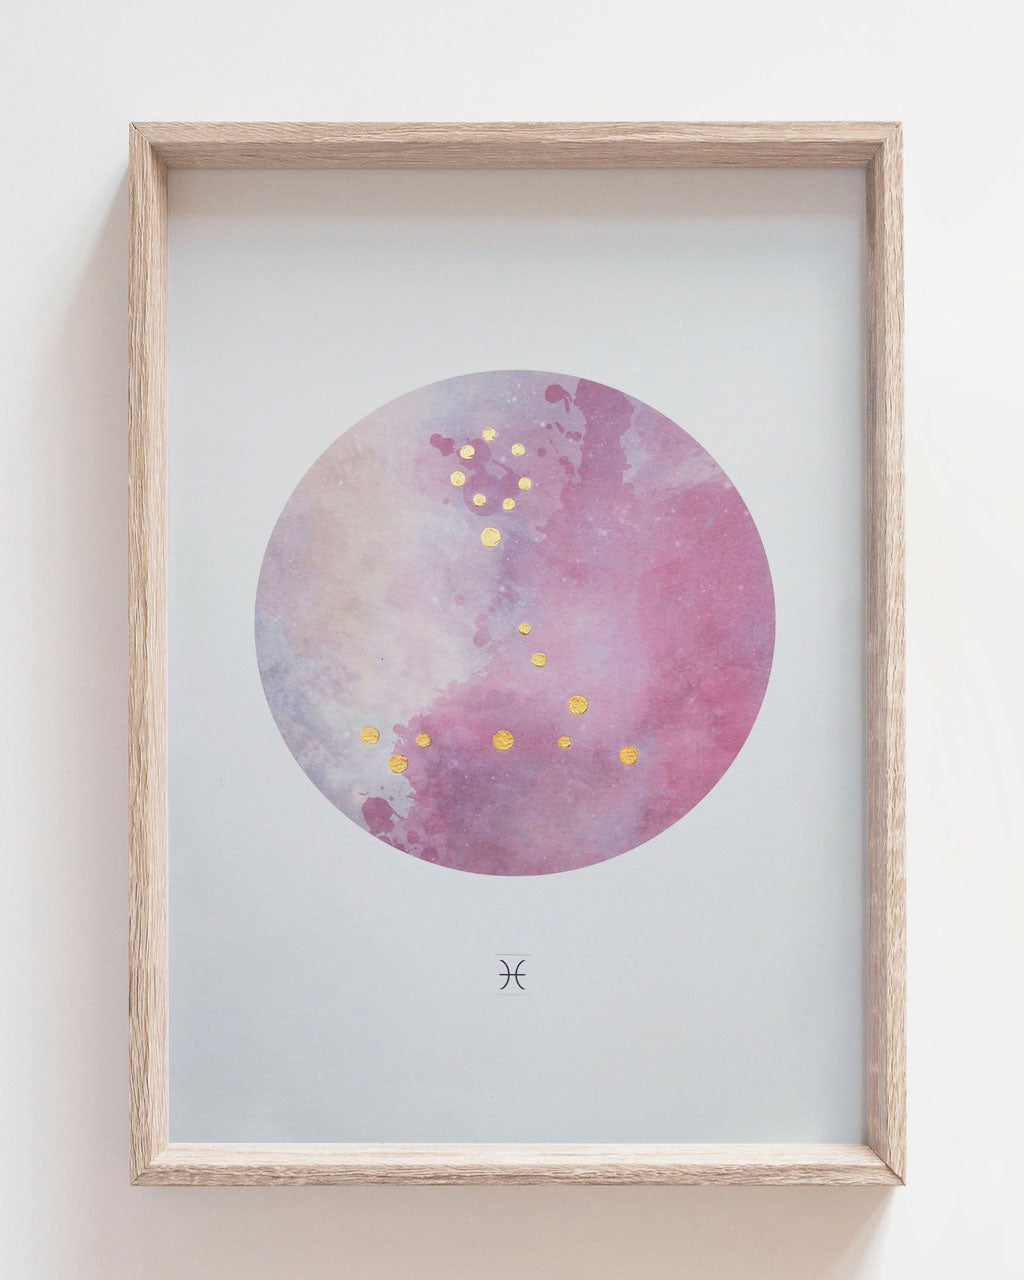 PISCES Zodiac Constellation Art Print with Hand-Painted Gold Stars